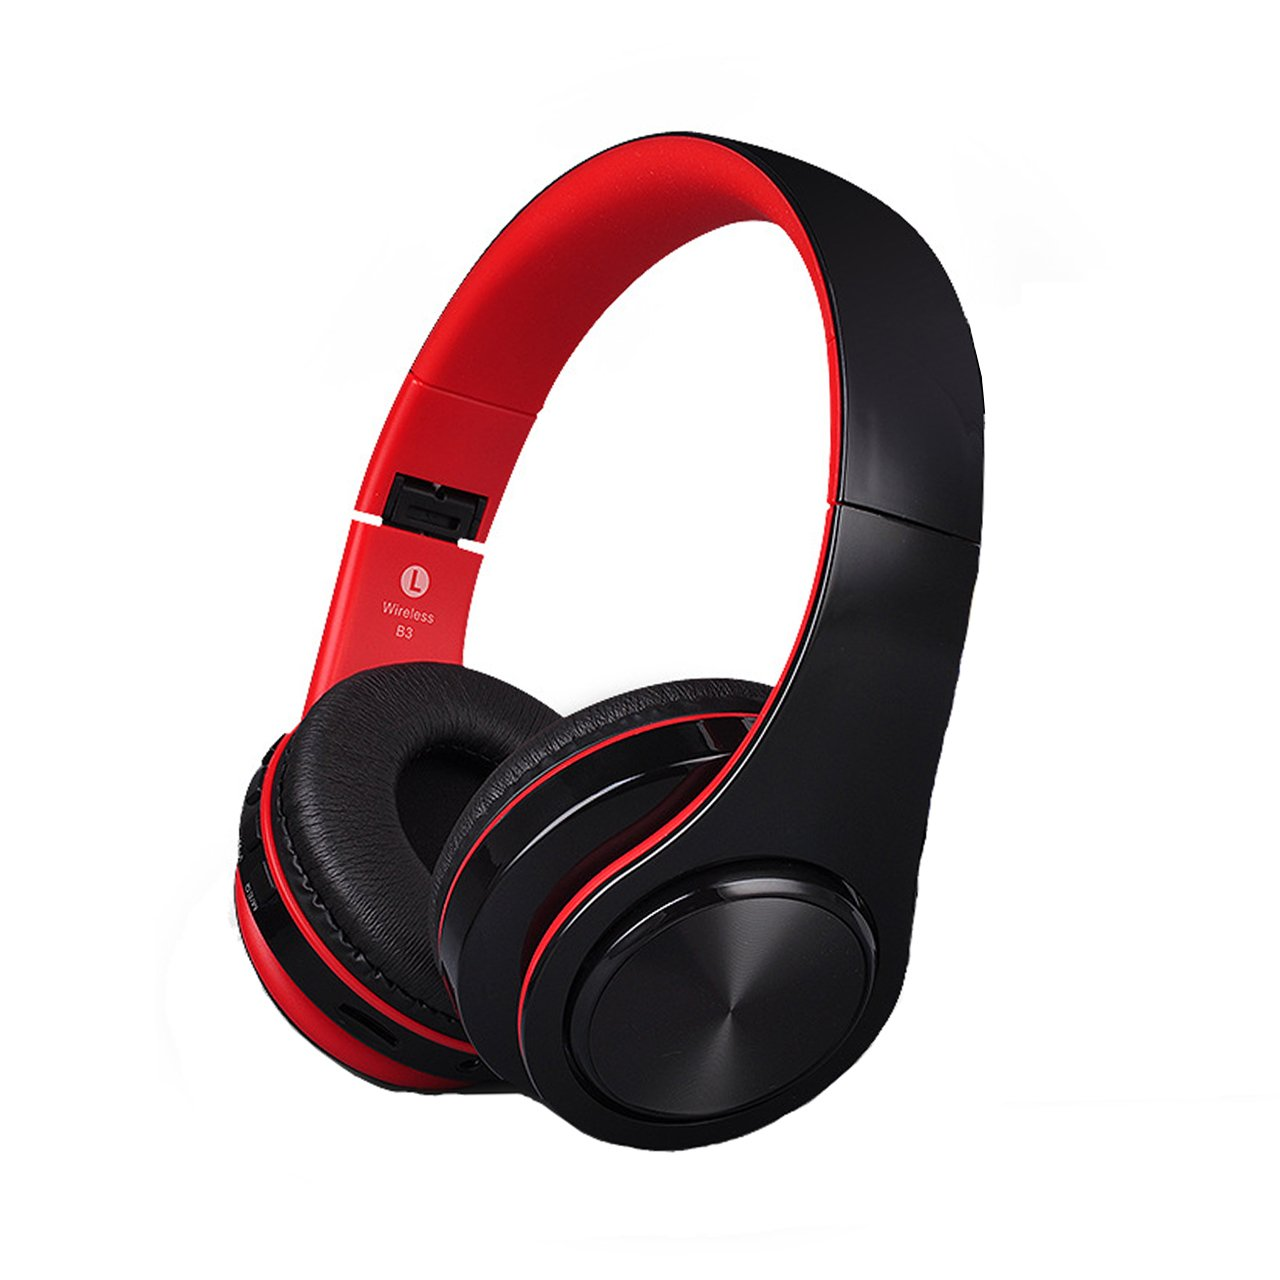 Bluetooth Headphones Over Ear Lightweight, Comfortable for Long-time Wearing, Hi-Fi Stereo Wireless Headphones, Foldable Headset w/Built-in Mic and Wired Mode for PC/Cell Phones/Black-Red